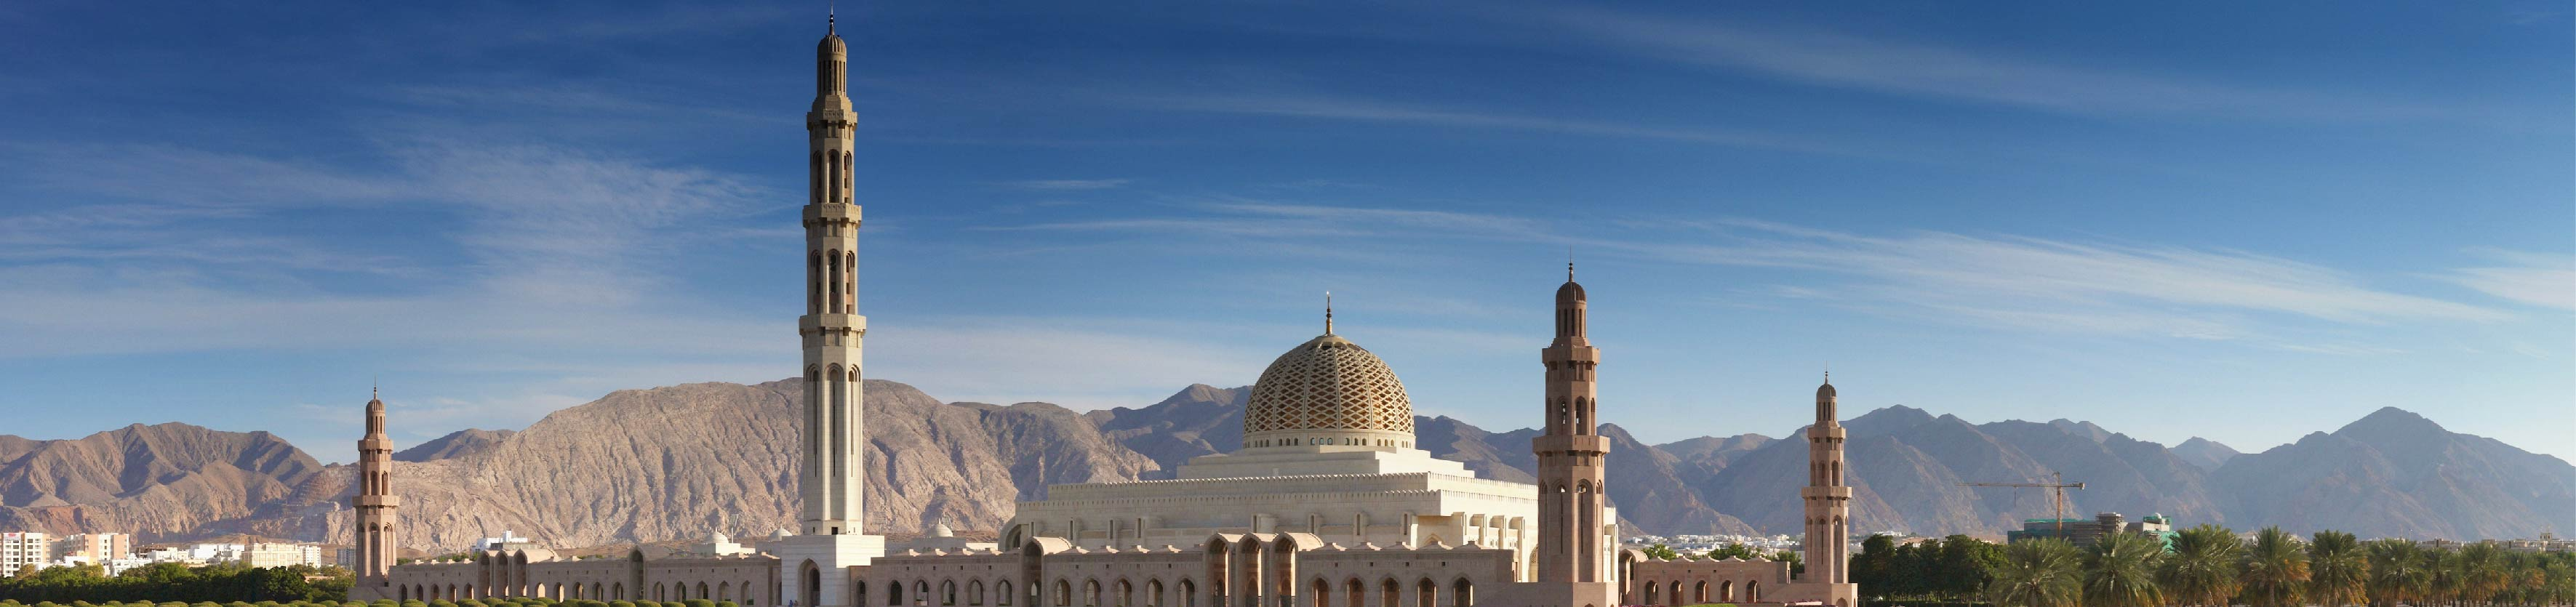 Discover The Wonders of Oman: The Best Tourist places in Oman